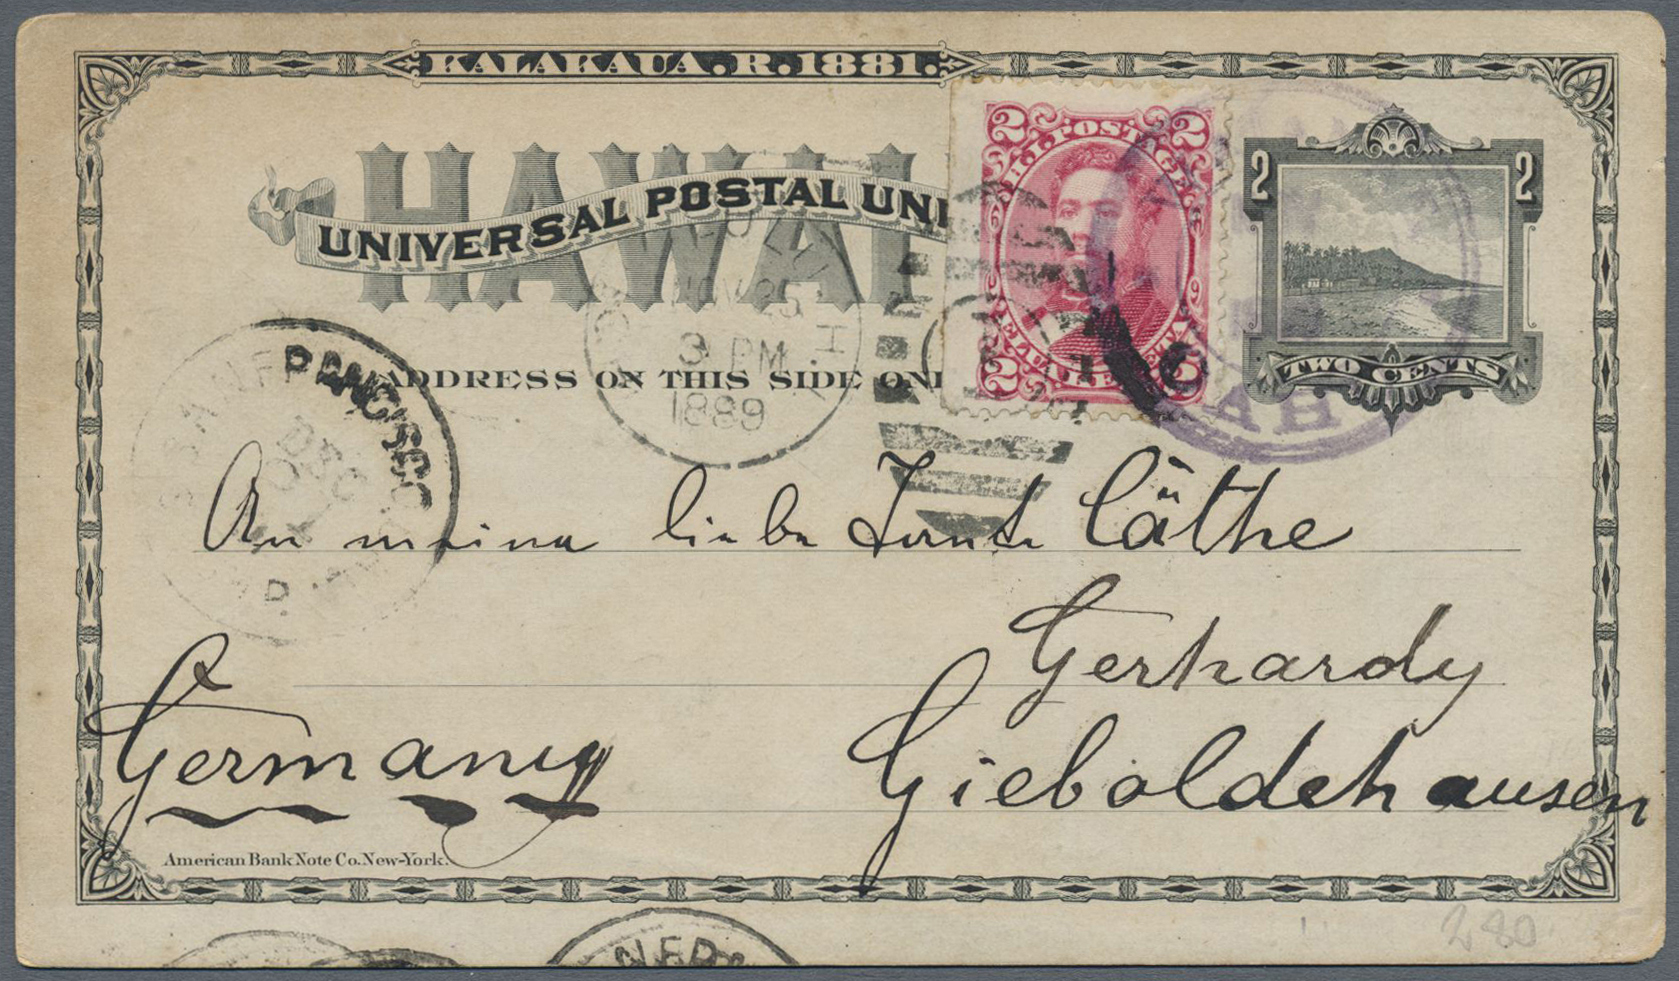 Lot 13845 - Hawaii - Ganzsachen  -  Auktionshaus Christoph Gärtner GmbH & Co. KG Single lots Philately Overseas & Europe. Auction #39 Day 4